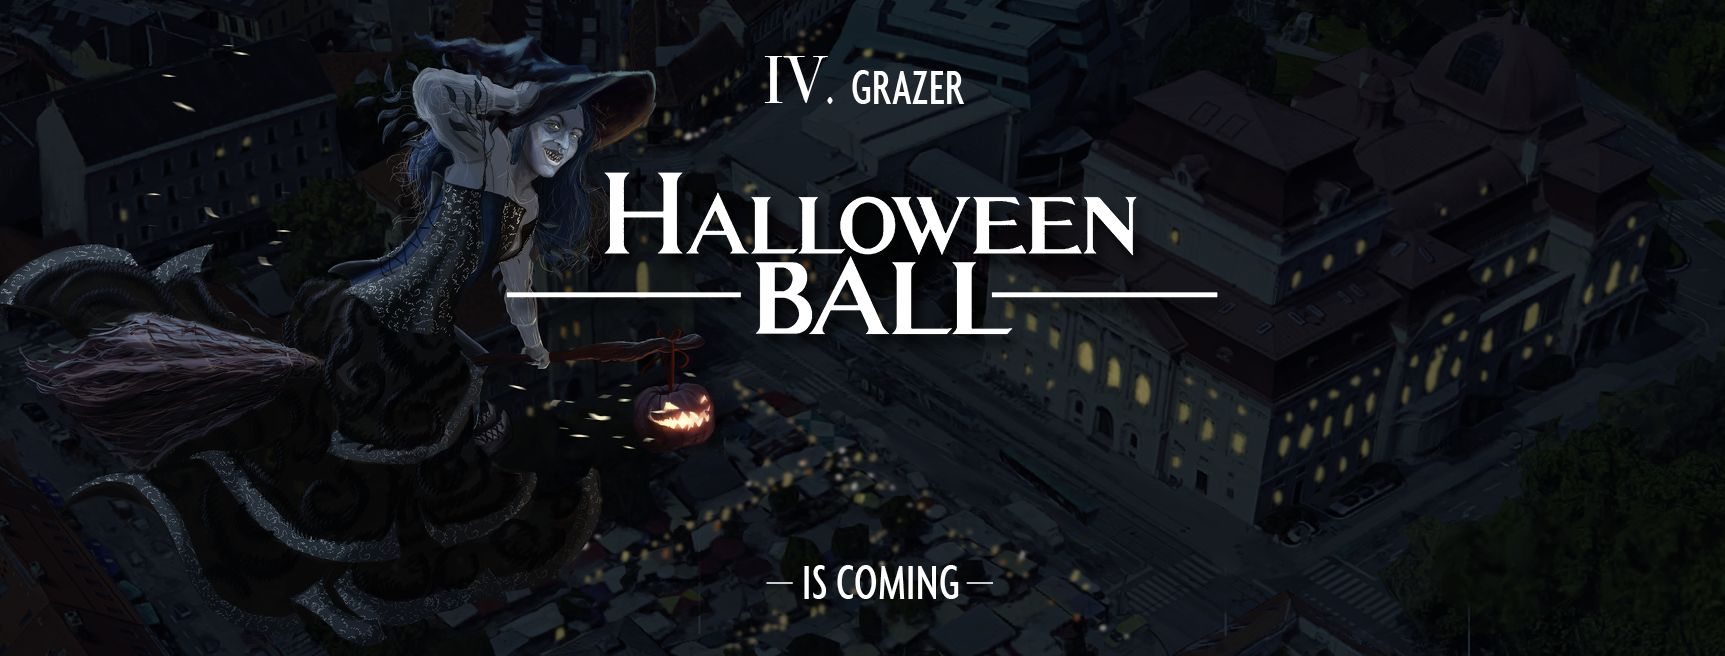 Halloween Ball Graz